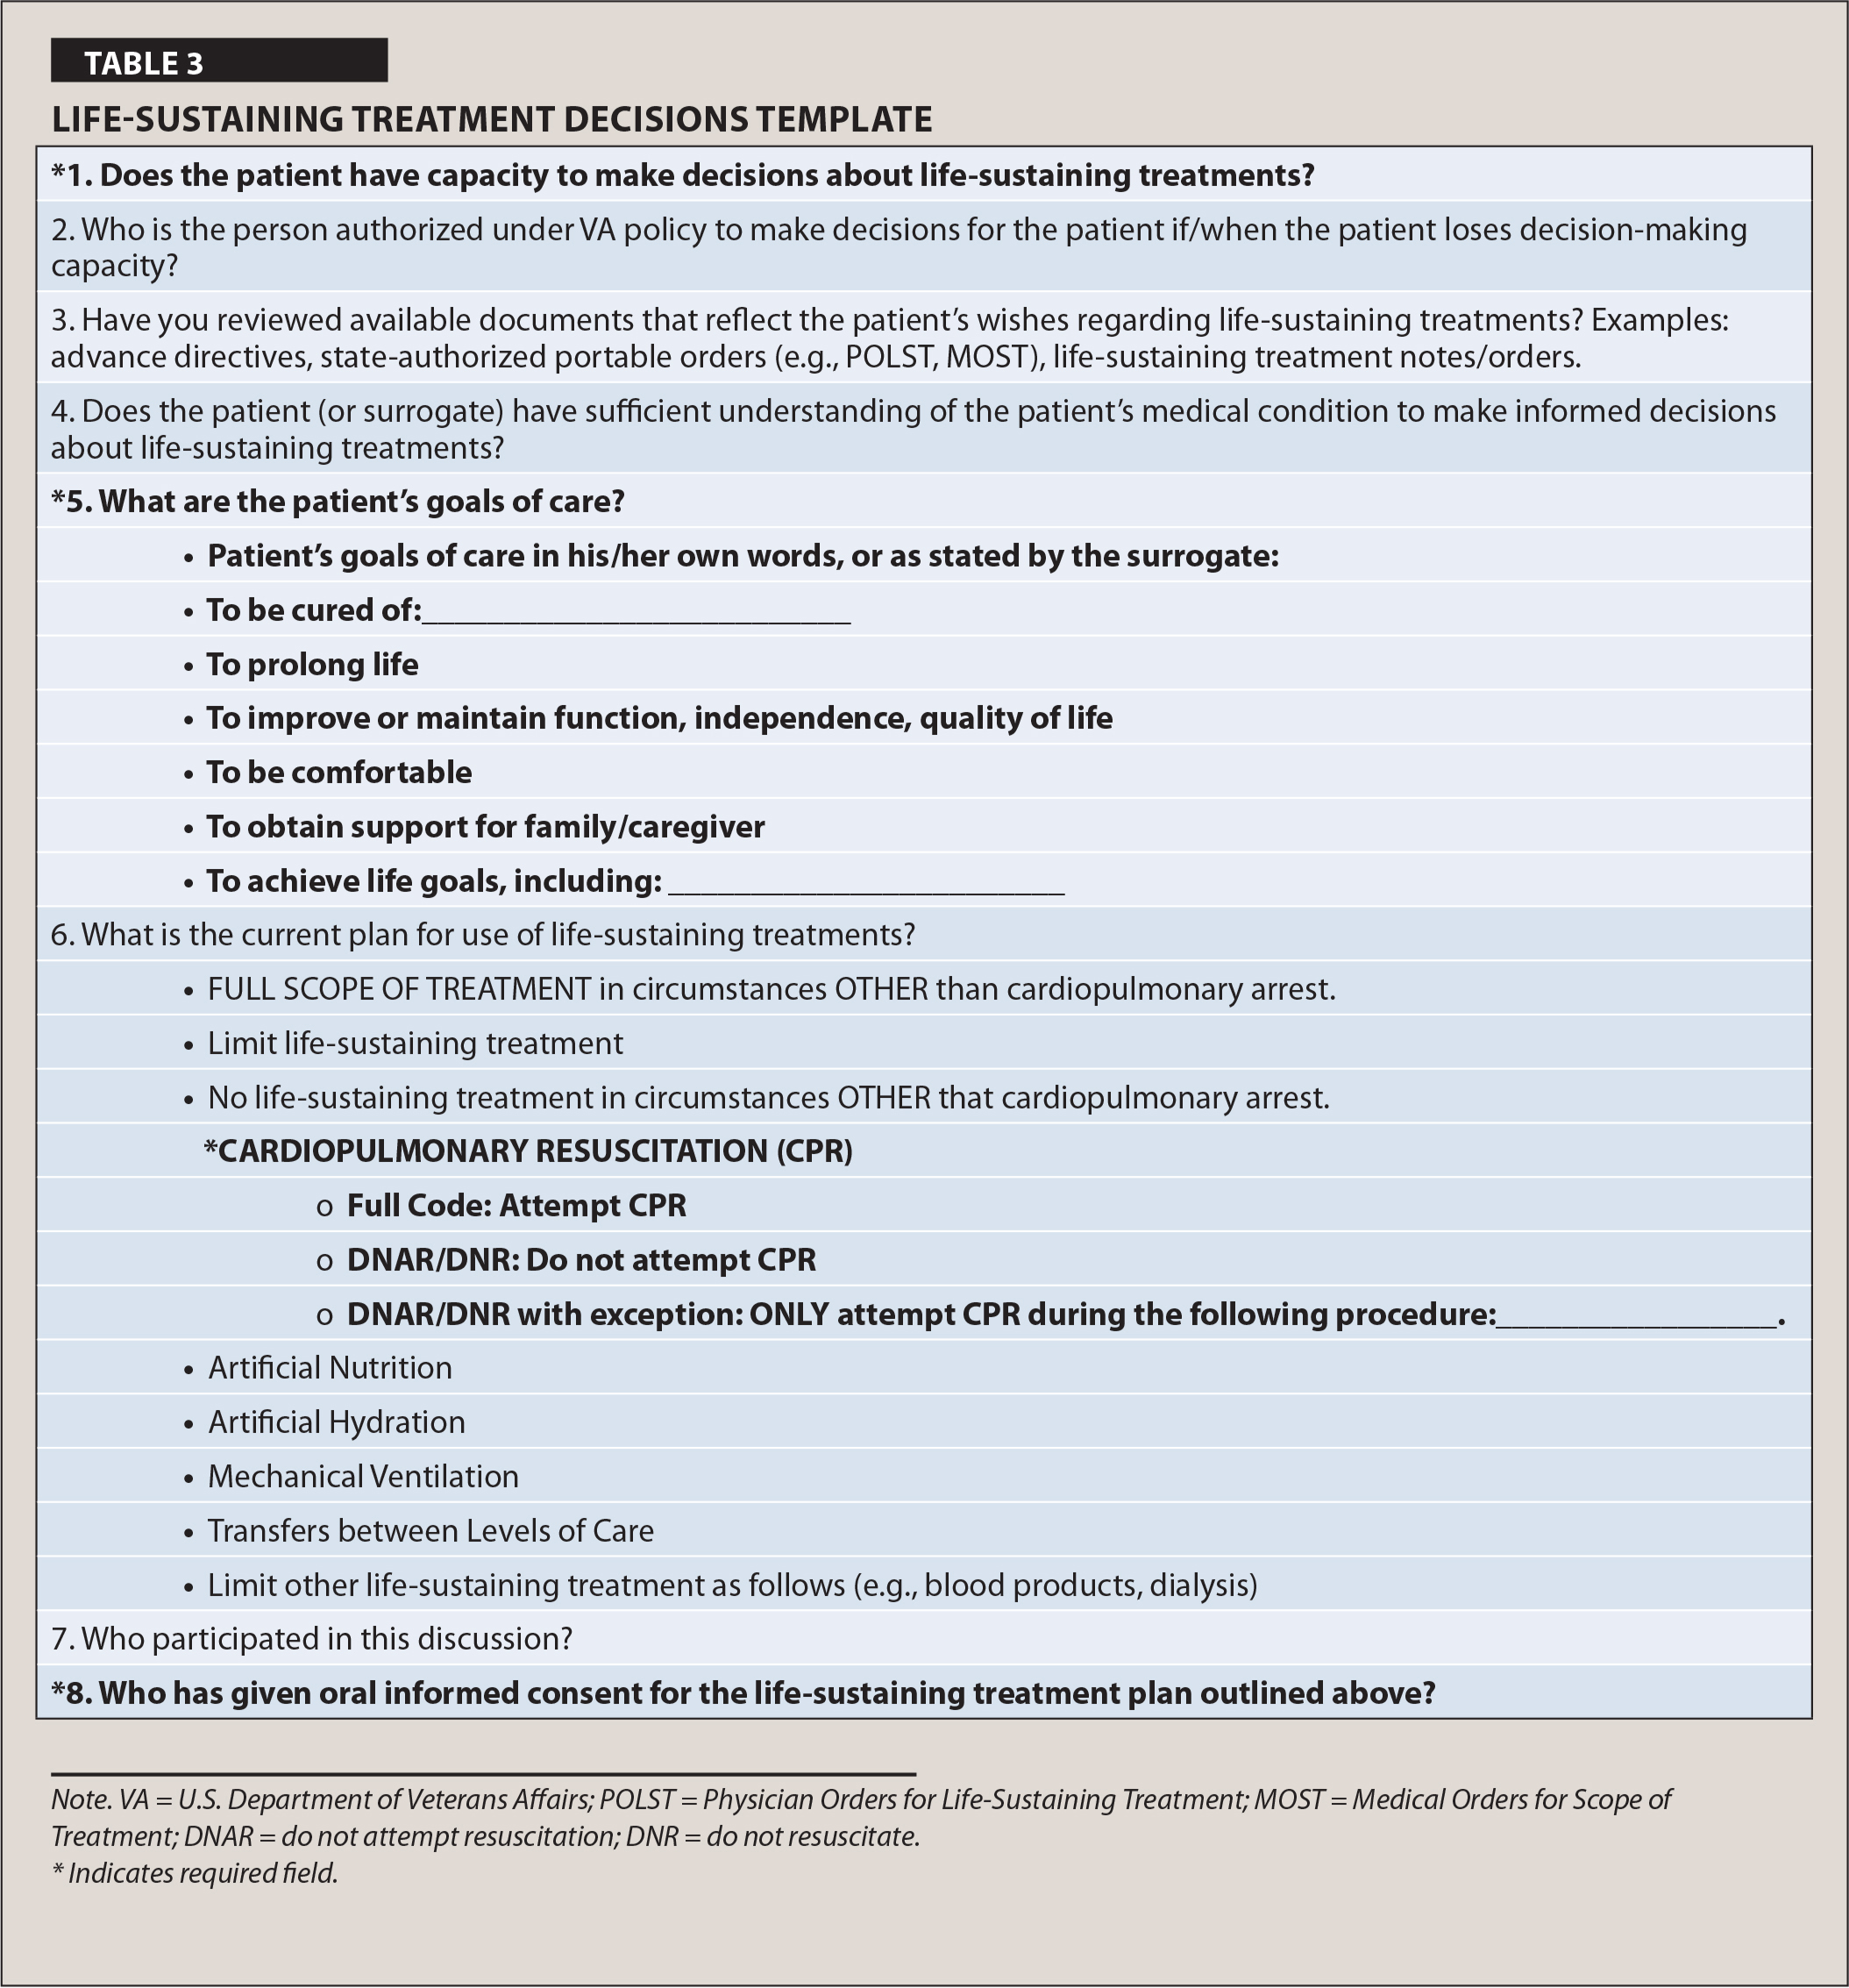 Life-Sustaining Treatment Decisions Template